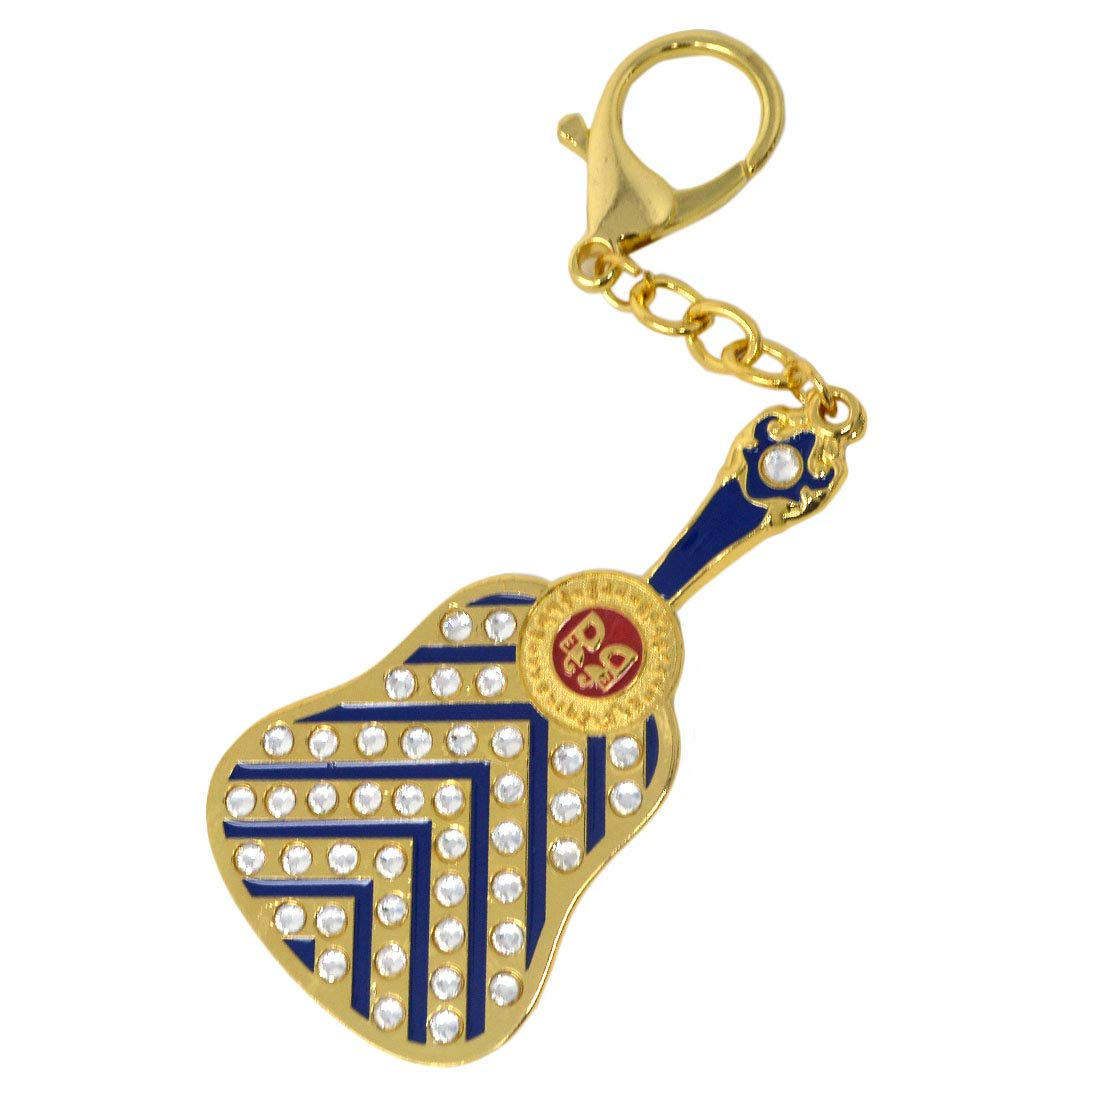 Feng Shui 2019 The EMPOWERING Mirror Fan Keychain for Power /& Influence W Red String Bracelet W3655 fengshuisale